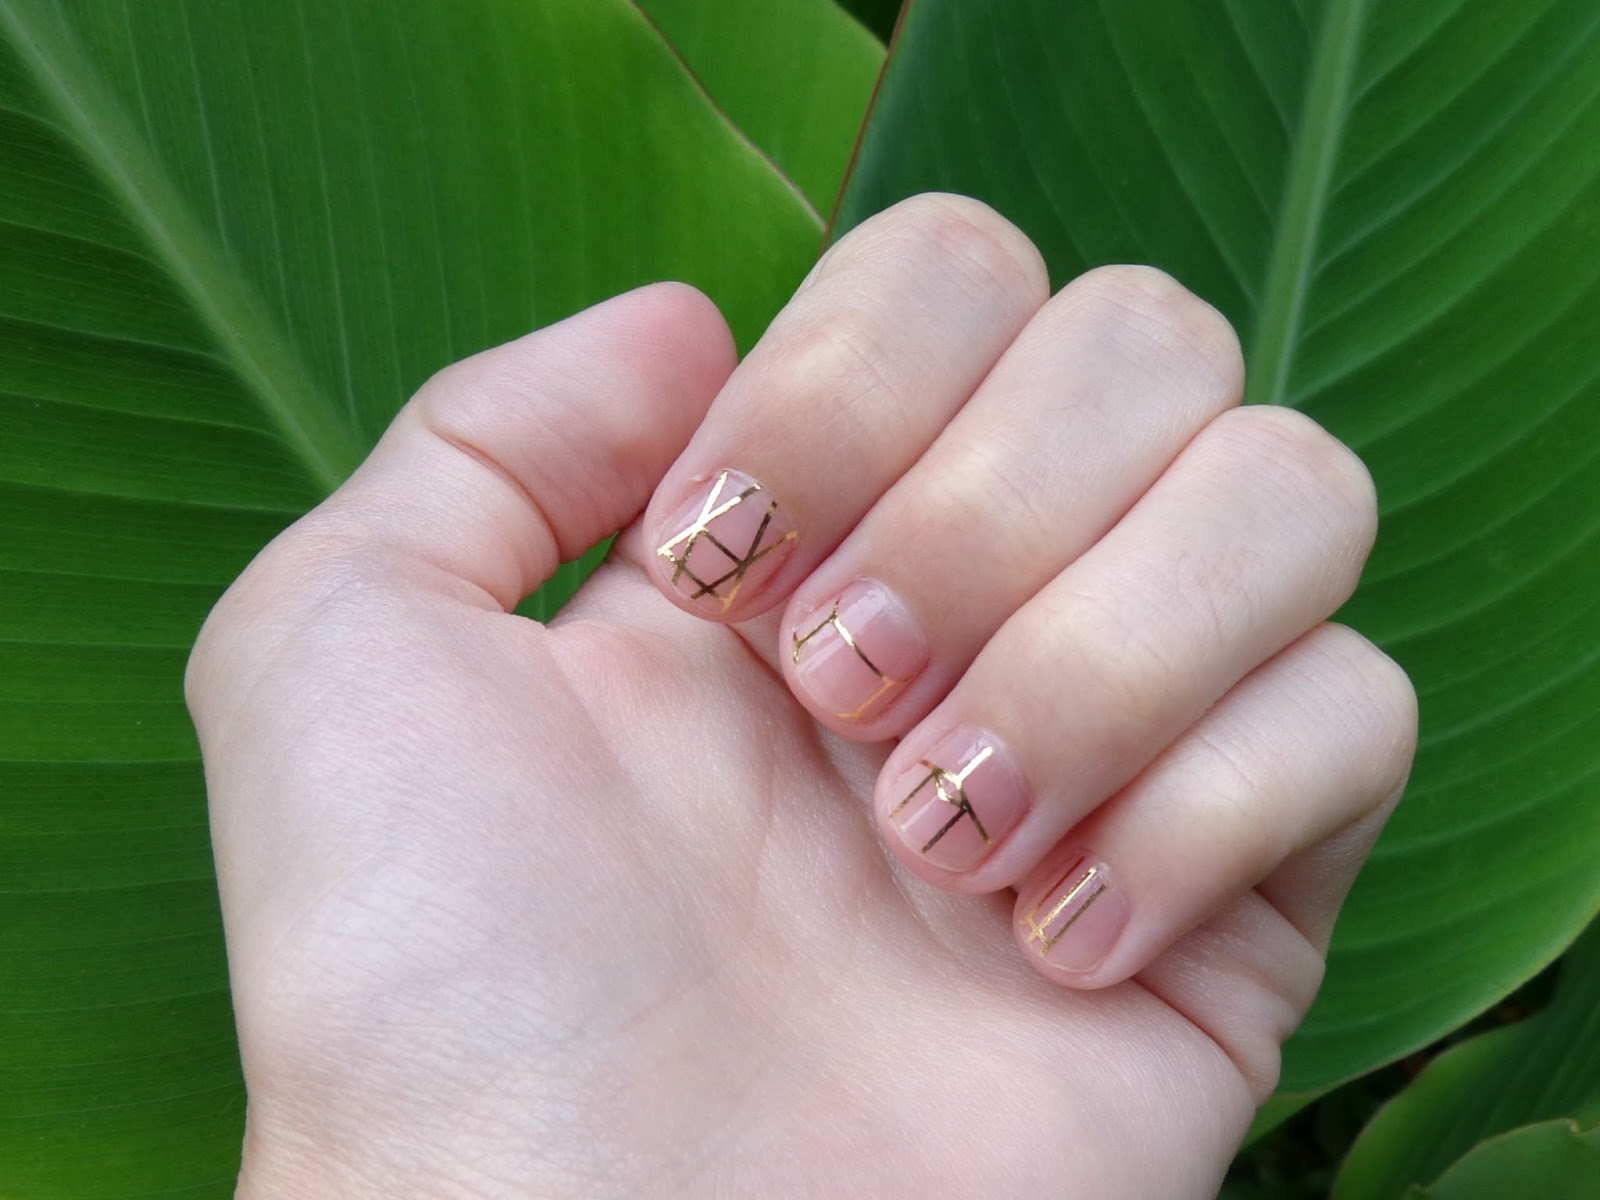 Simple Minimalist Geometric Nail Art